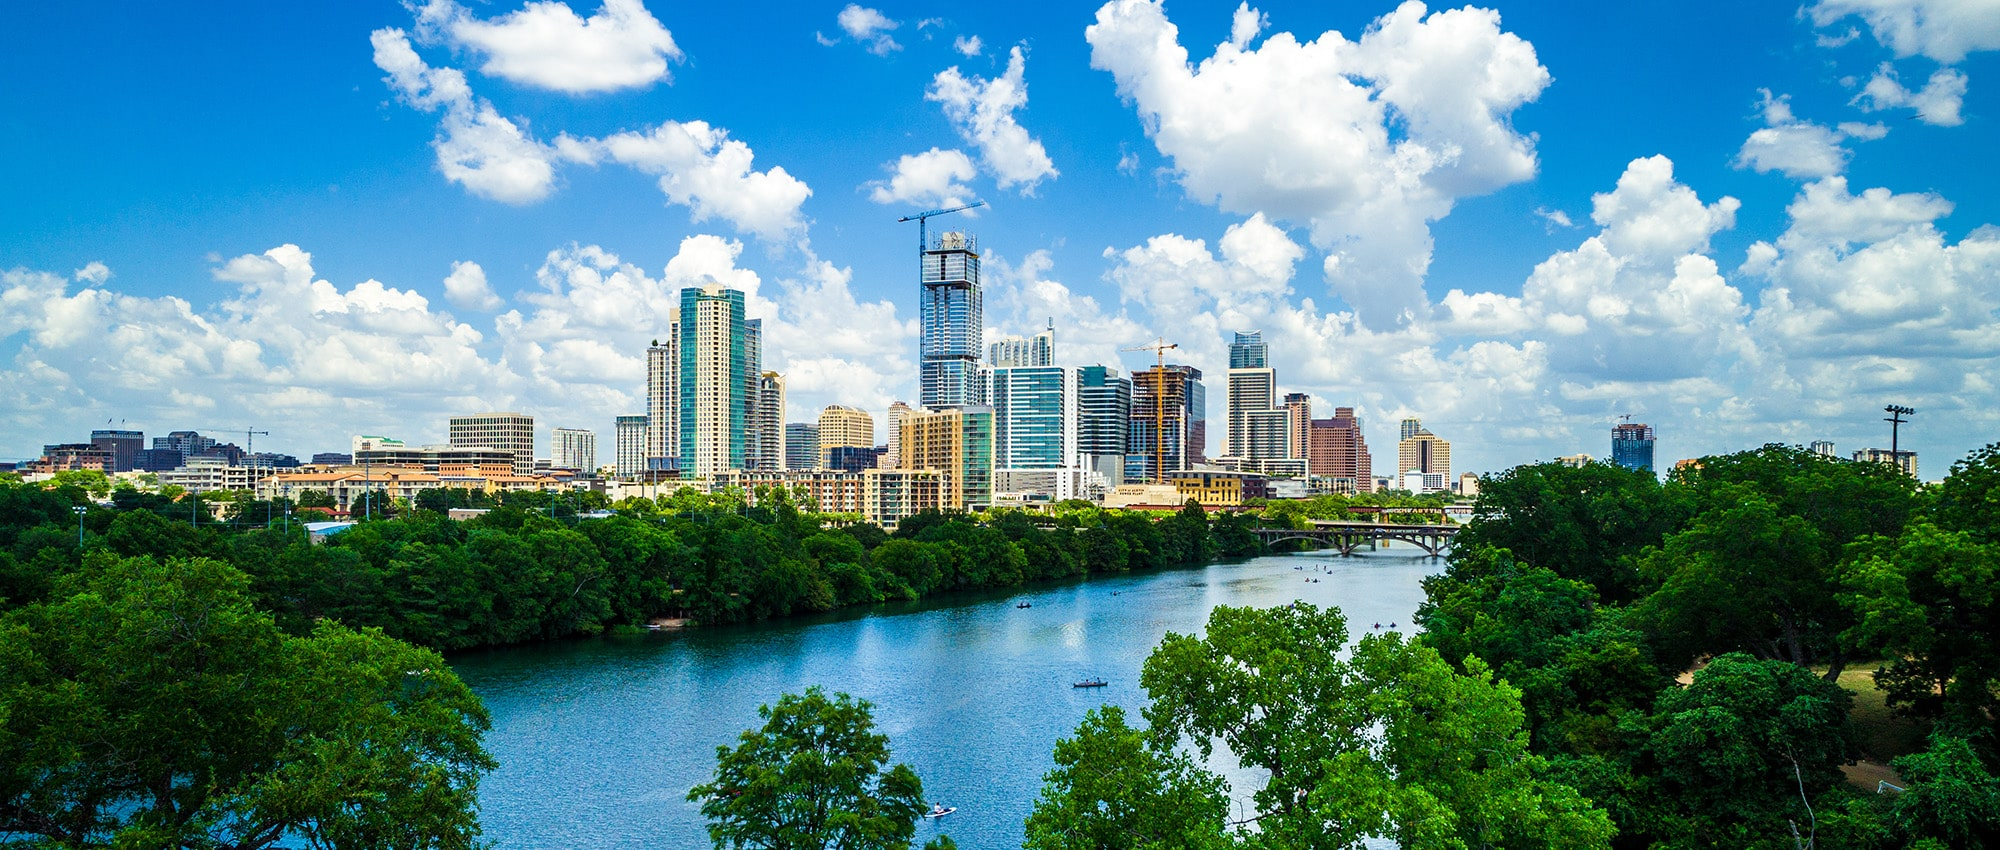 Why Austin Texas Is One Of The Best Cities For Business